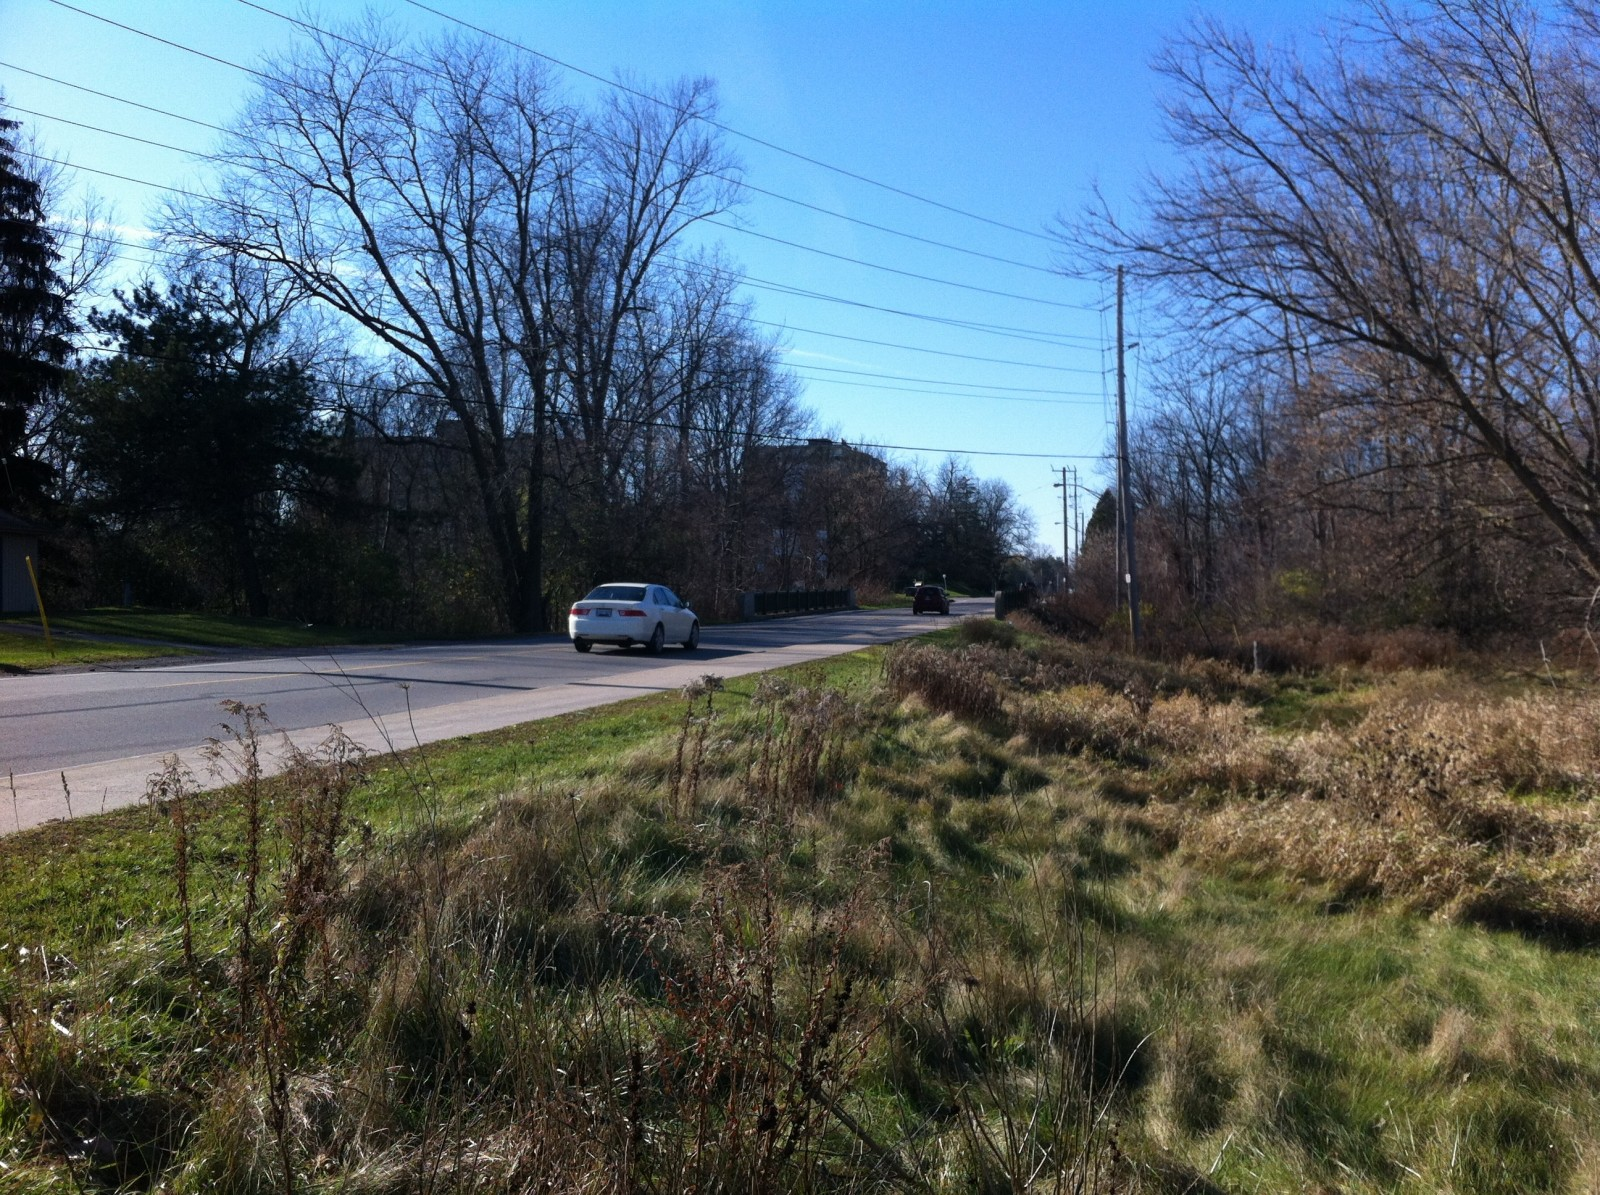 Increase in animal-related car crashes likely due to increase of deer population